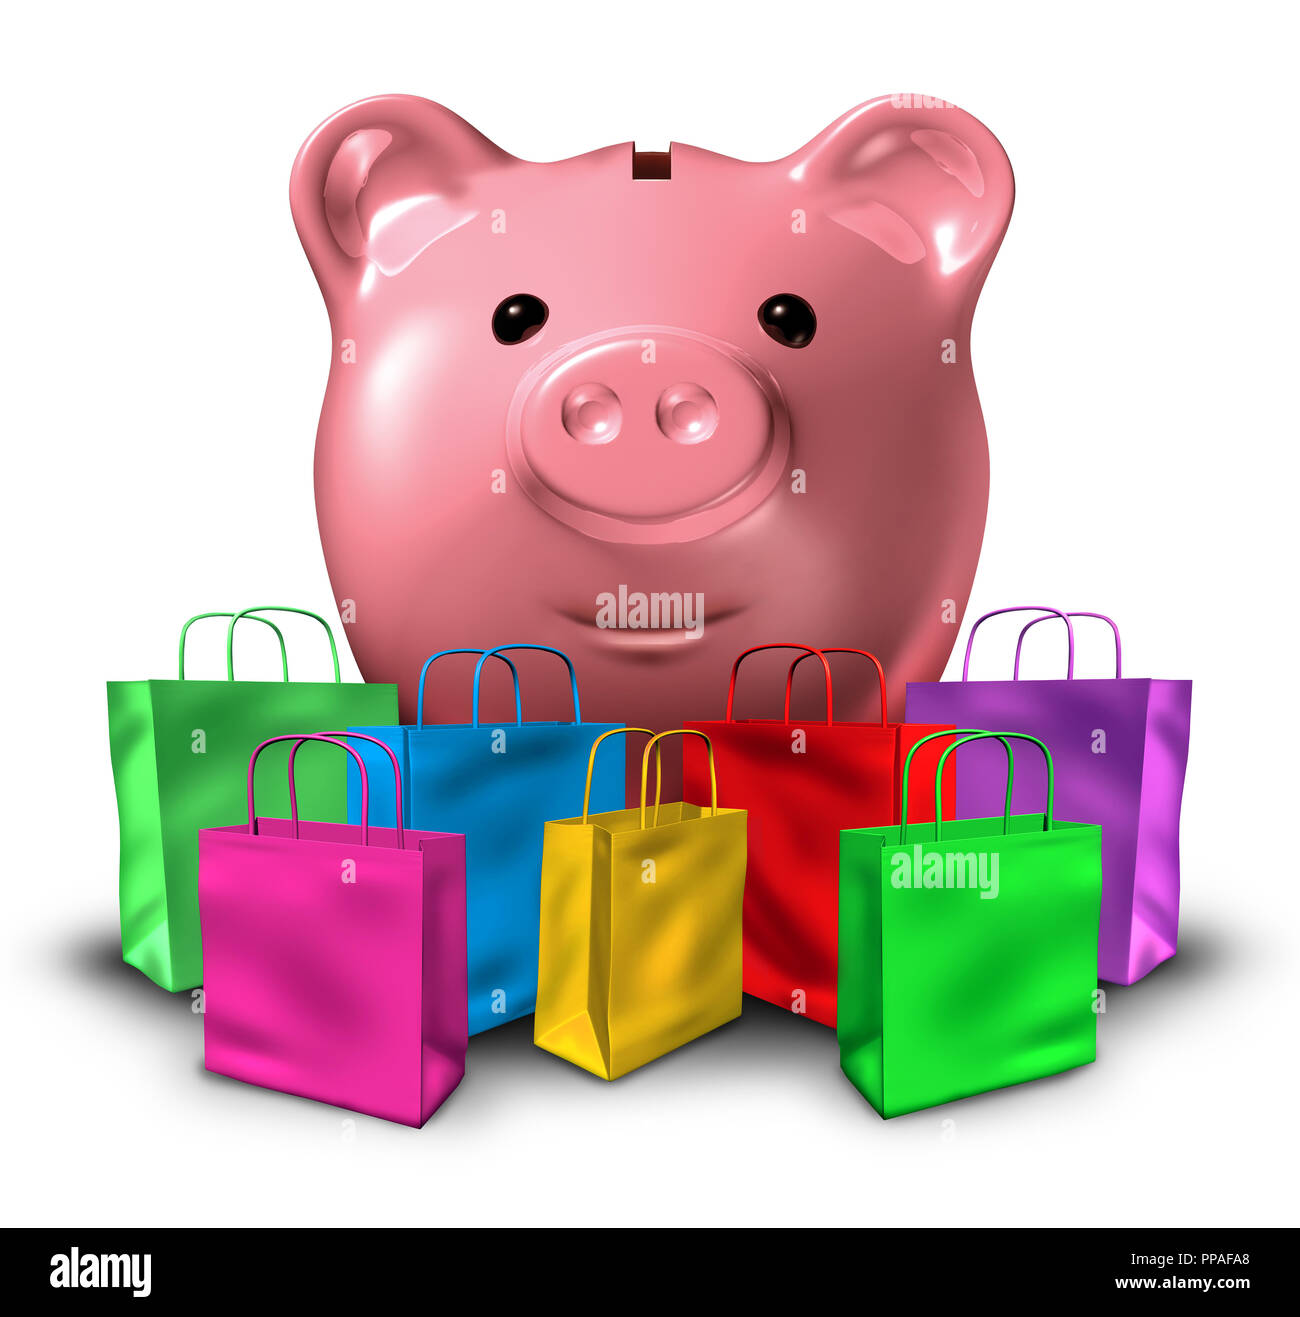 Consumer debt shopping and budget spending concept  and consumerism with shopping bags and a piggy bank representing store credit and budgeting. - Stock Image